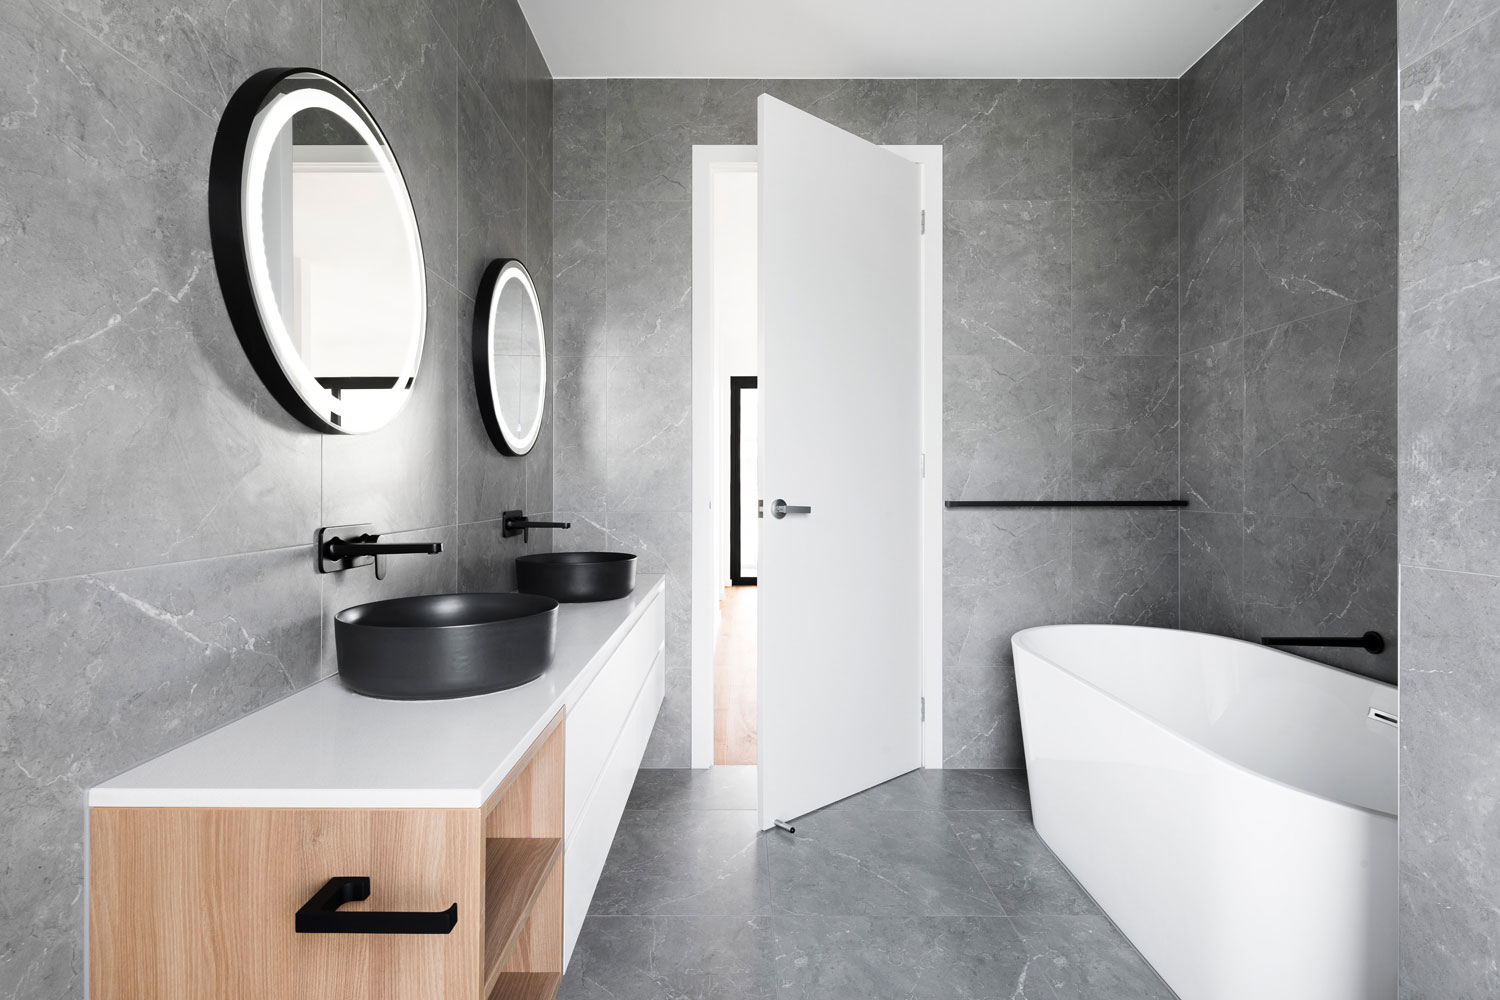 5 Reasons to Remodel Your Bathroom Now